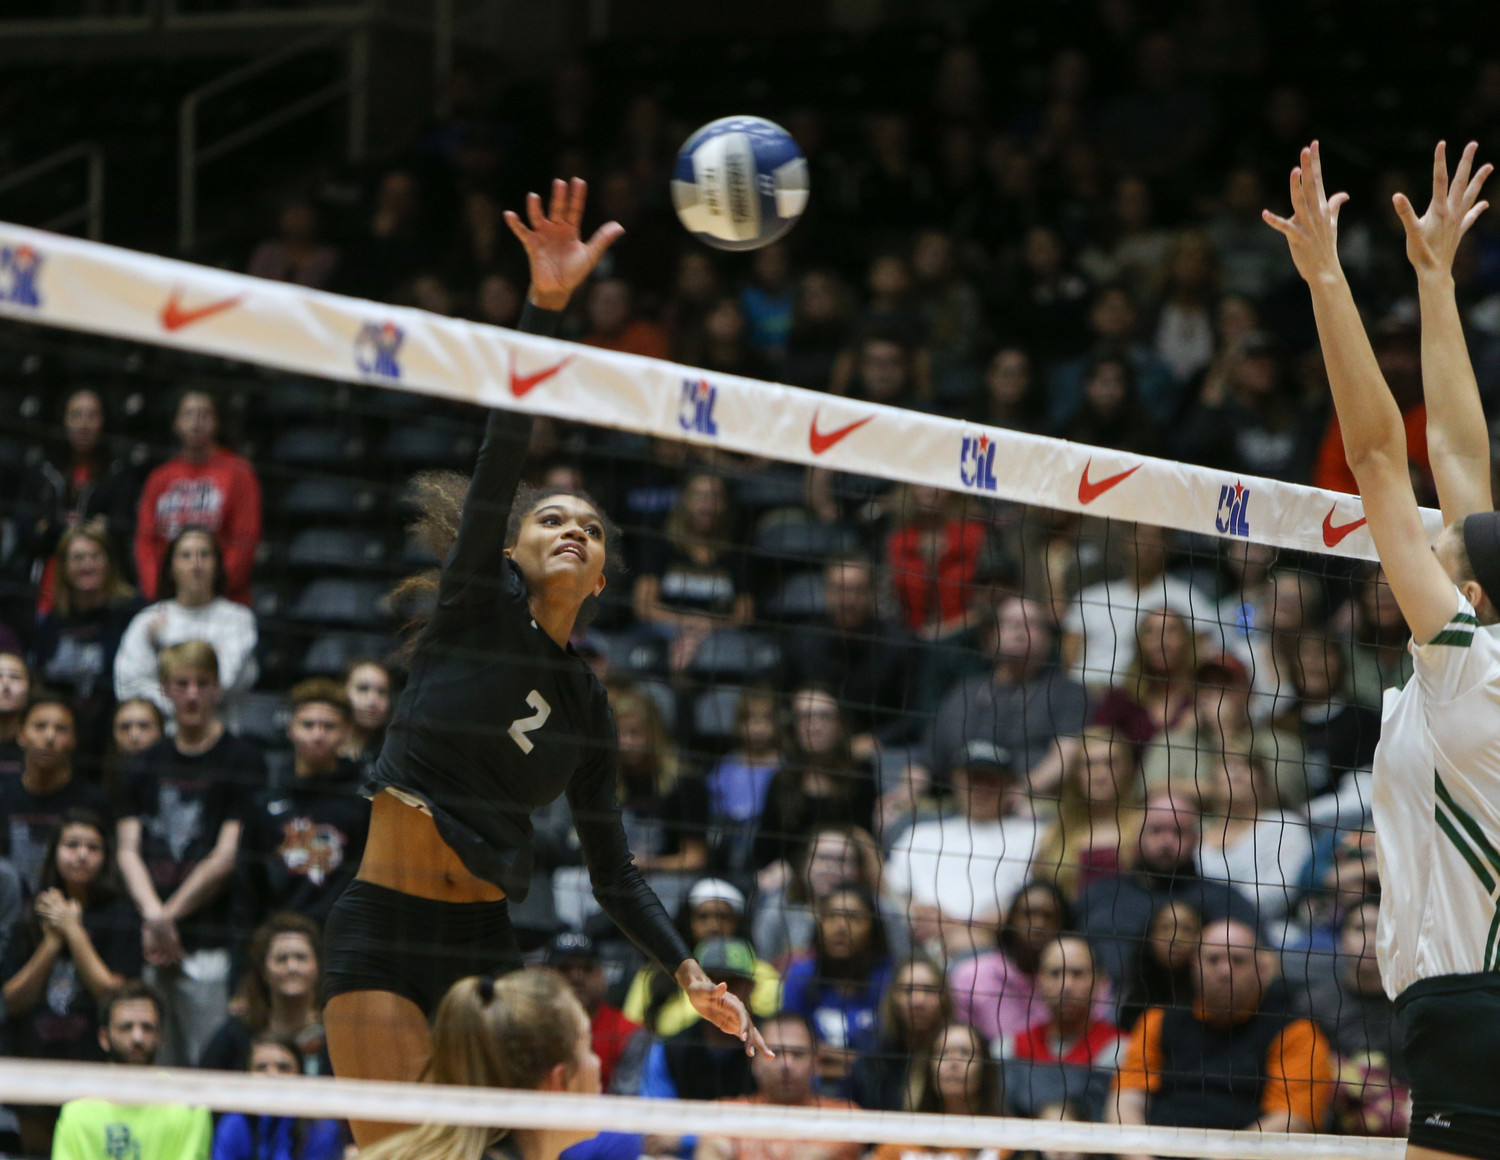 Rouse Raiders senior e'lan McCall (2) attacks during the Class 5A high school volleyball state final between Rouse High School and Prosper High School at Curtis Culwell Center in Garland, Texas, on November 18, 2017. Prosper won the match in five sets, (25-18, 21-25, 18-25, 25, 23, 16-14) to win the 5A state championship.